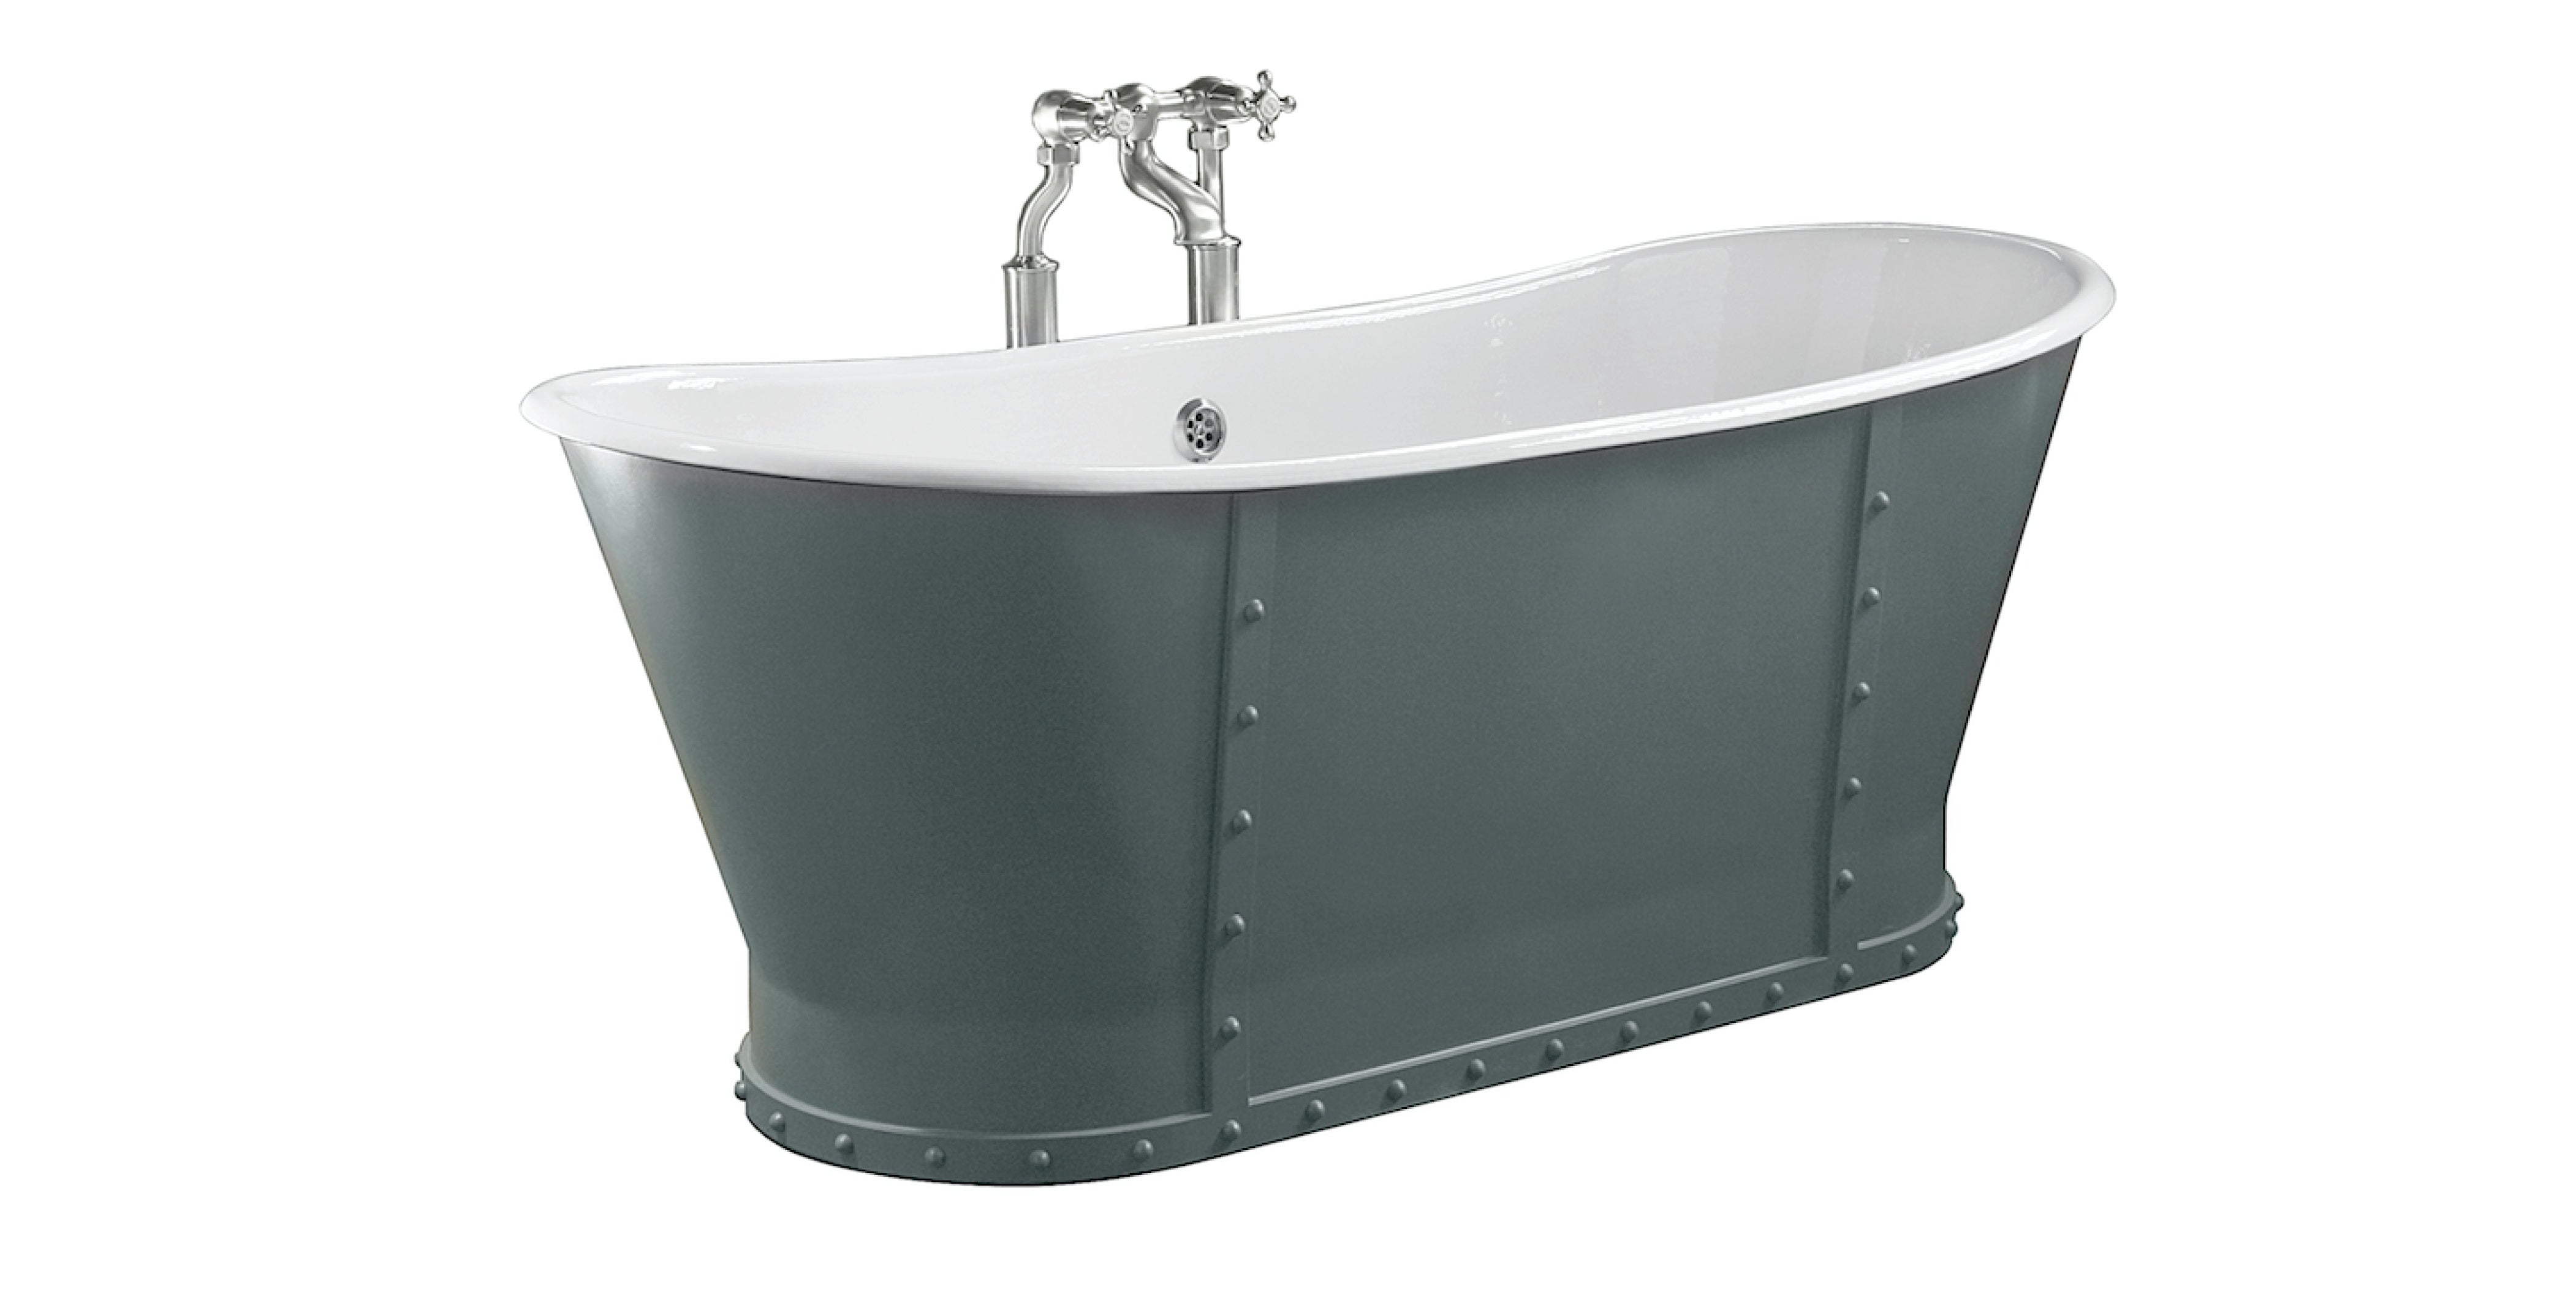 industrial style bath with rivet detail from aston matthews